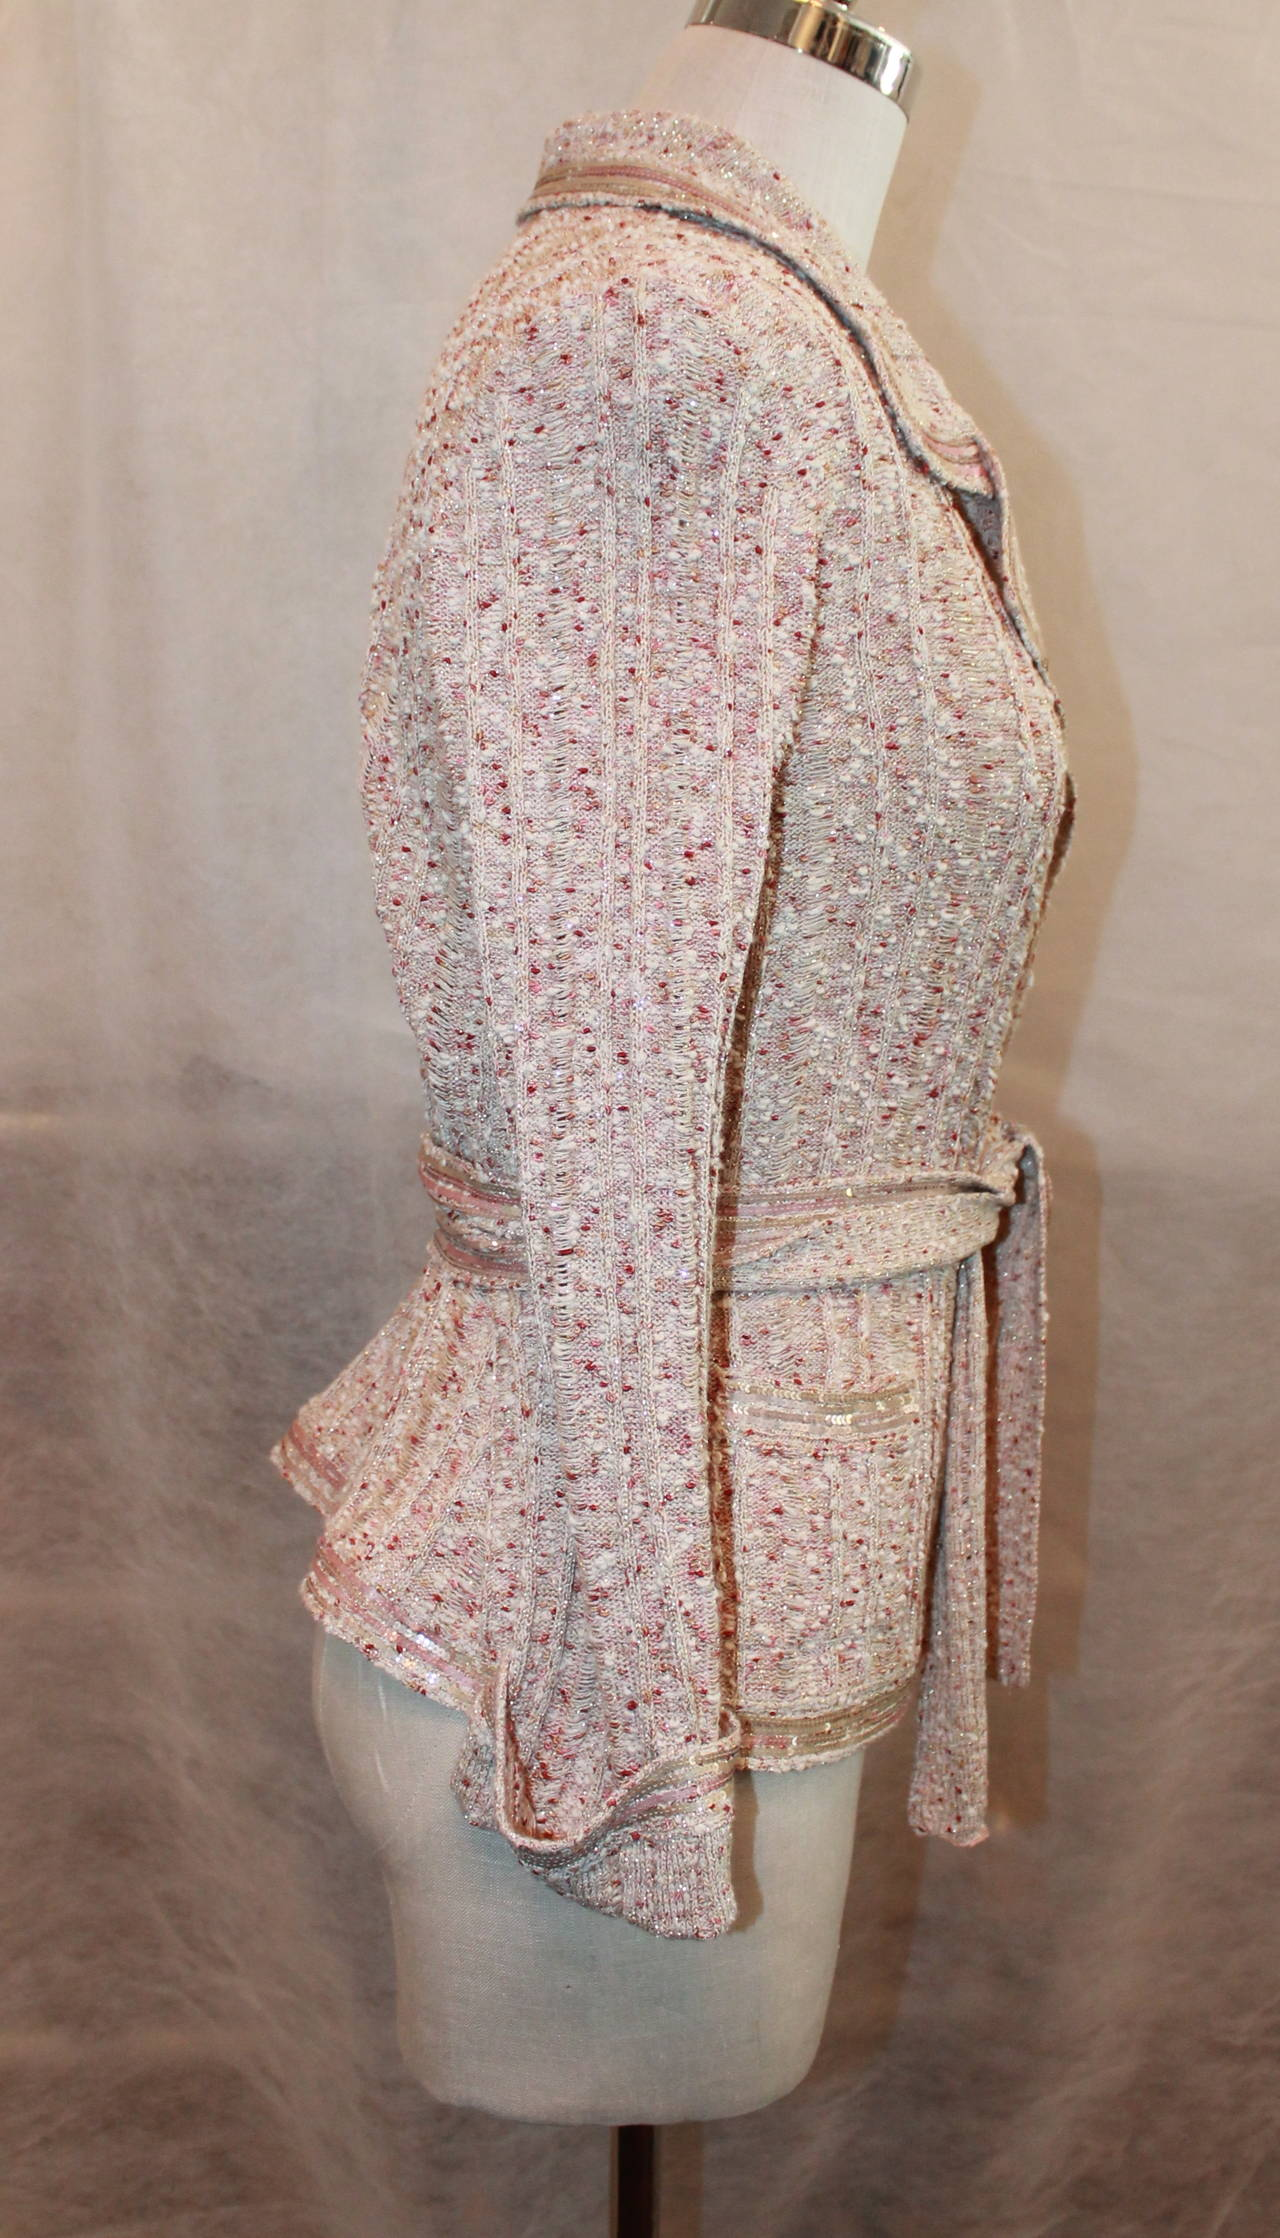 Chanel Beige Knit Jacket with Sequins - Size 40 - Circa 2006 4